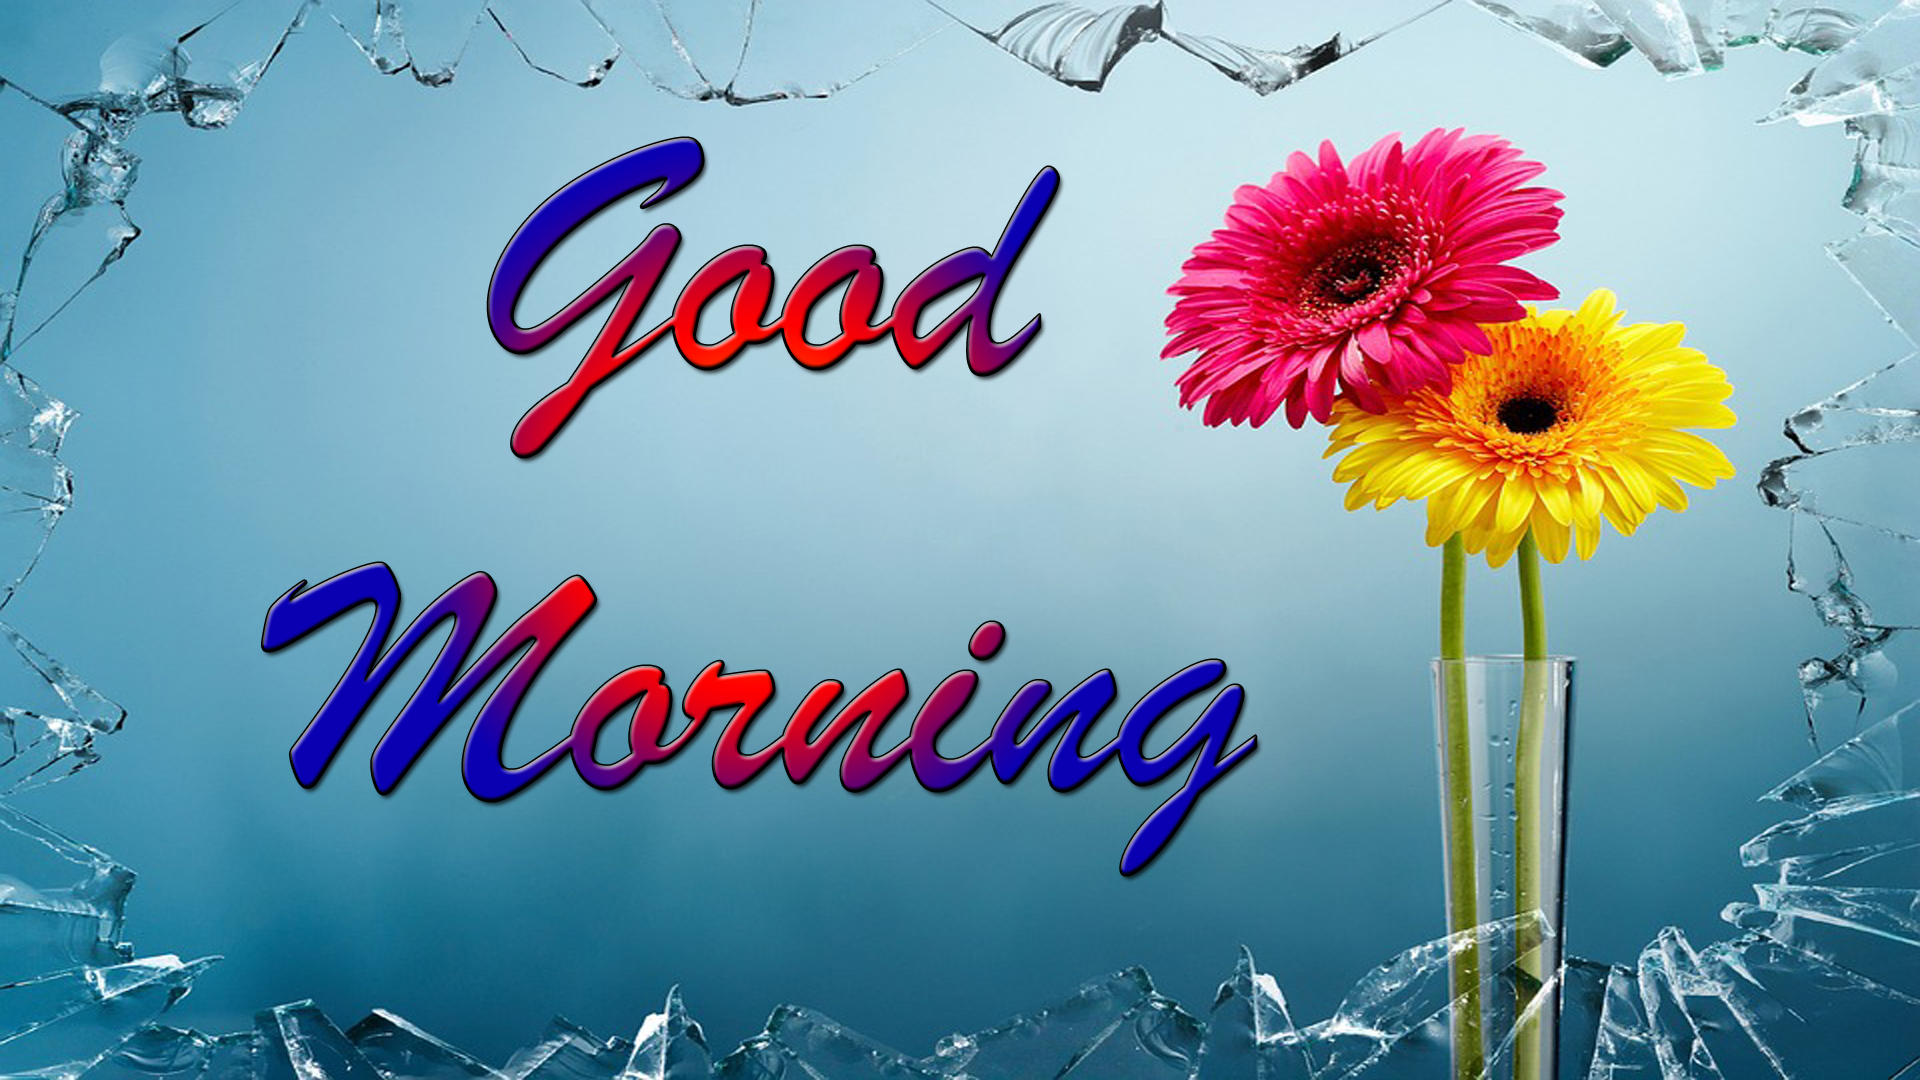 Good Morning Wishes Greetings Messages 2018 Images